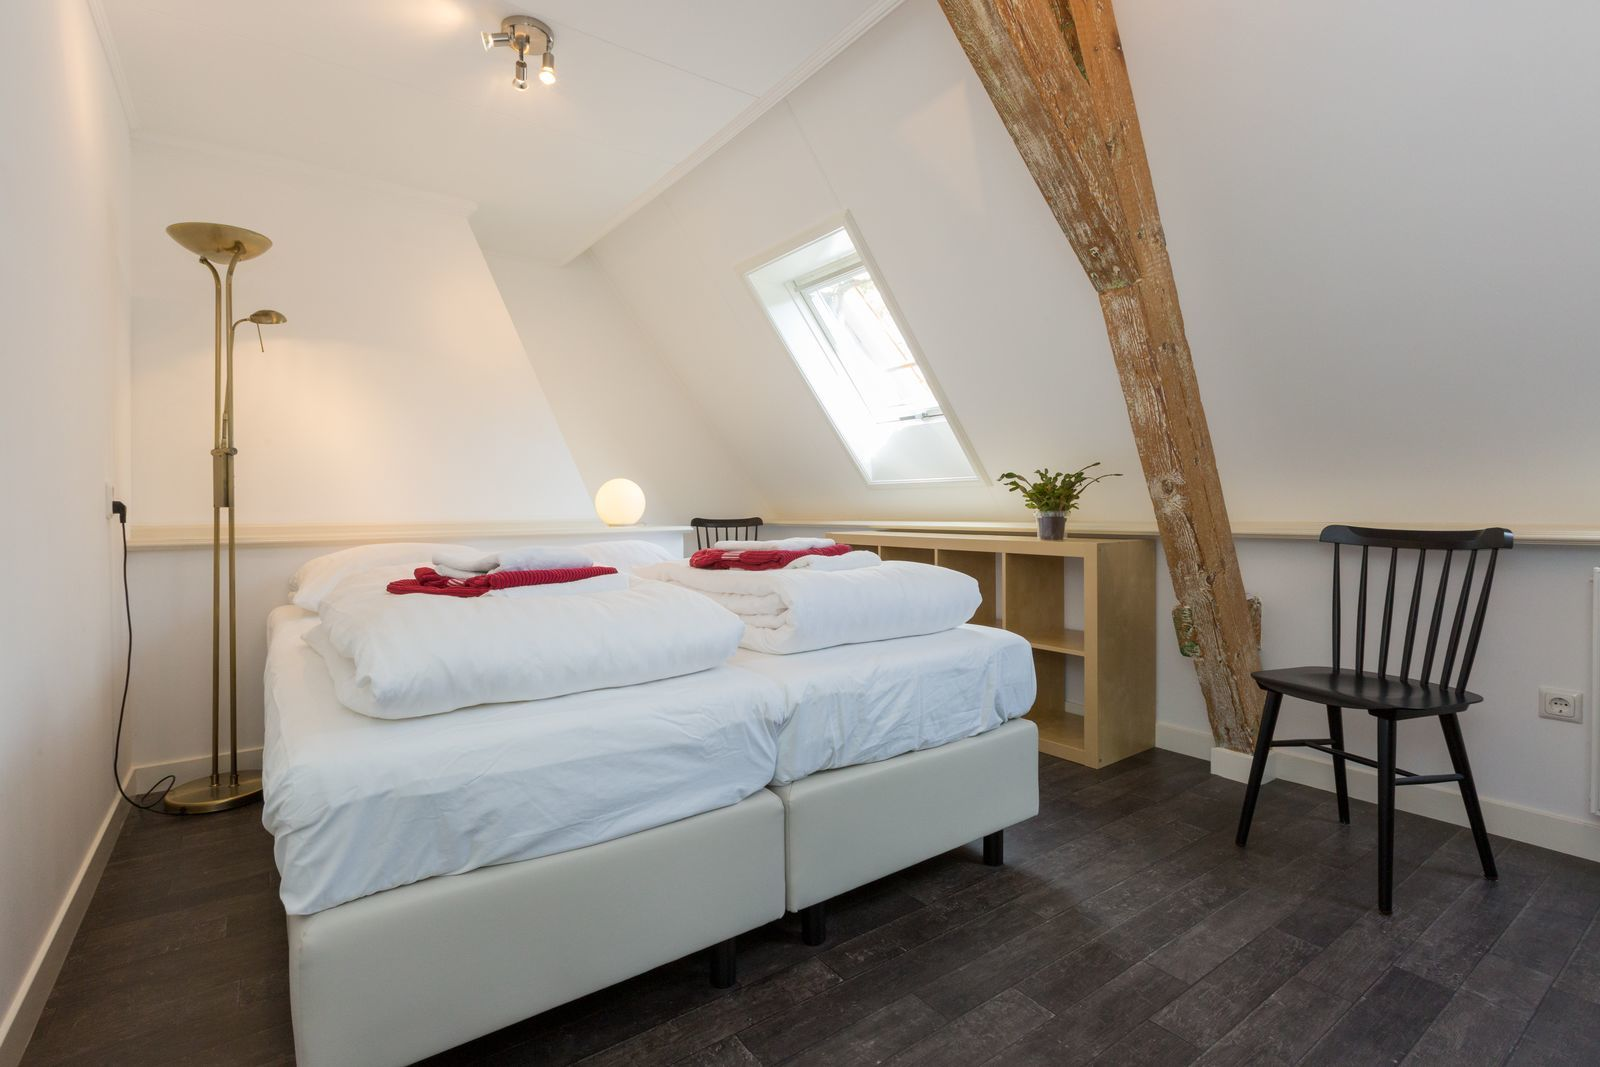 Oostkapelle - Holidayhome - 8 Persons